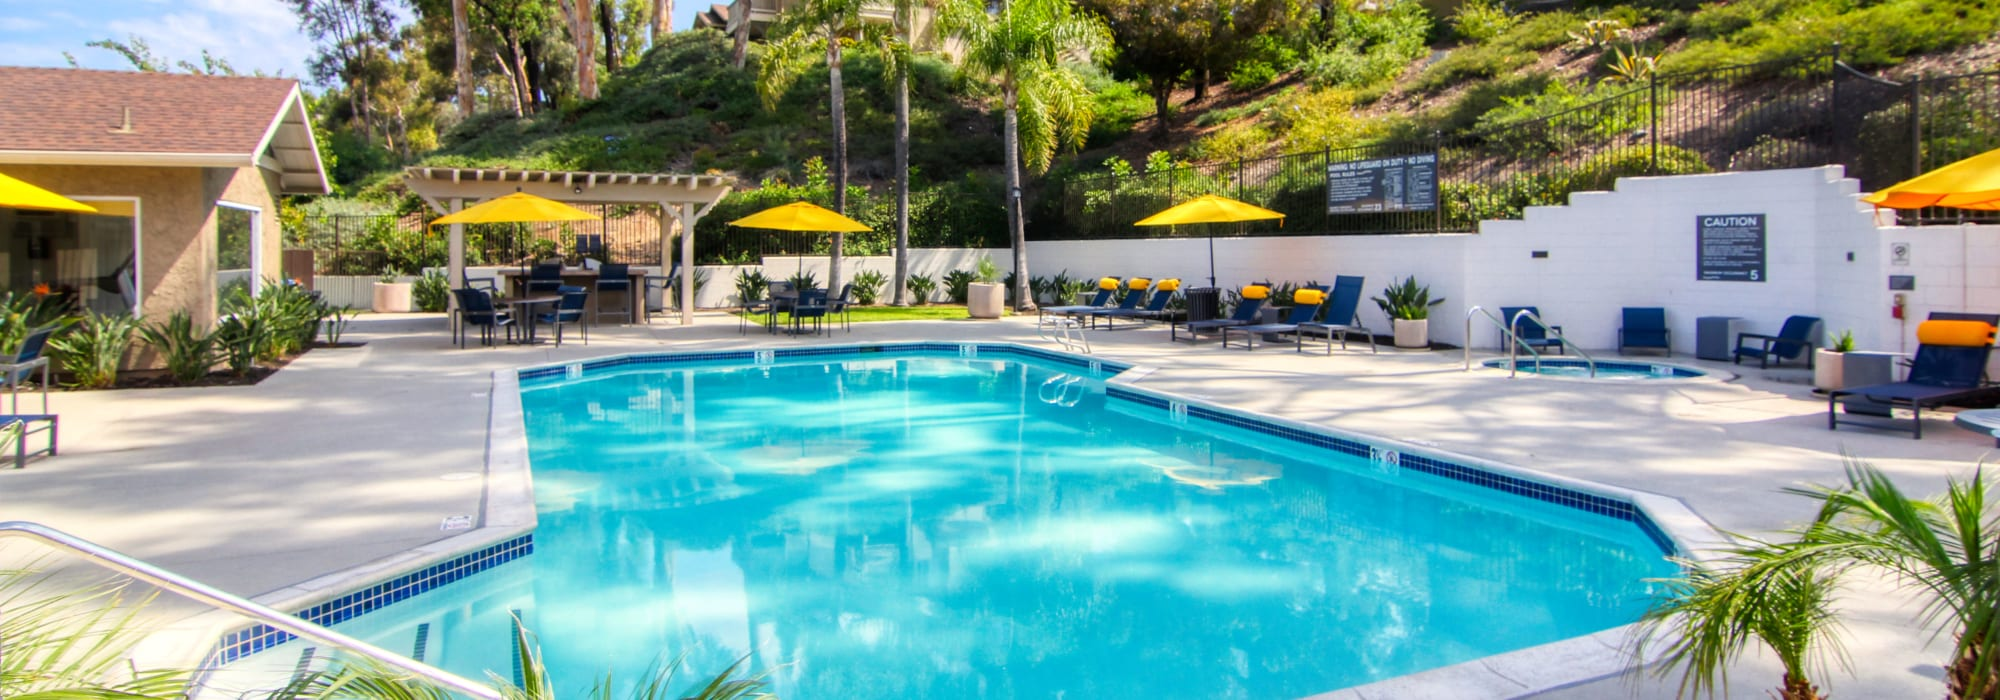 Privacy policy of Lakeview Village Apartments in Spring Valley, California